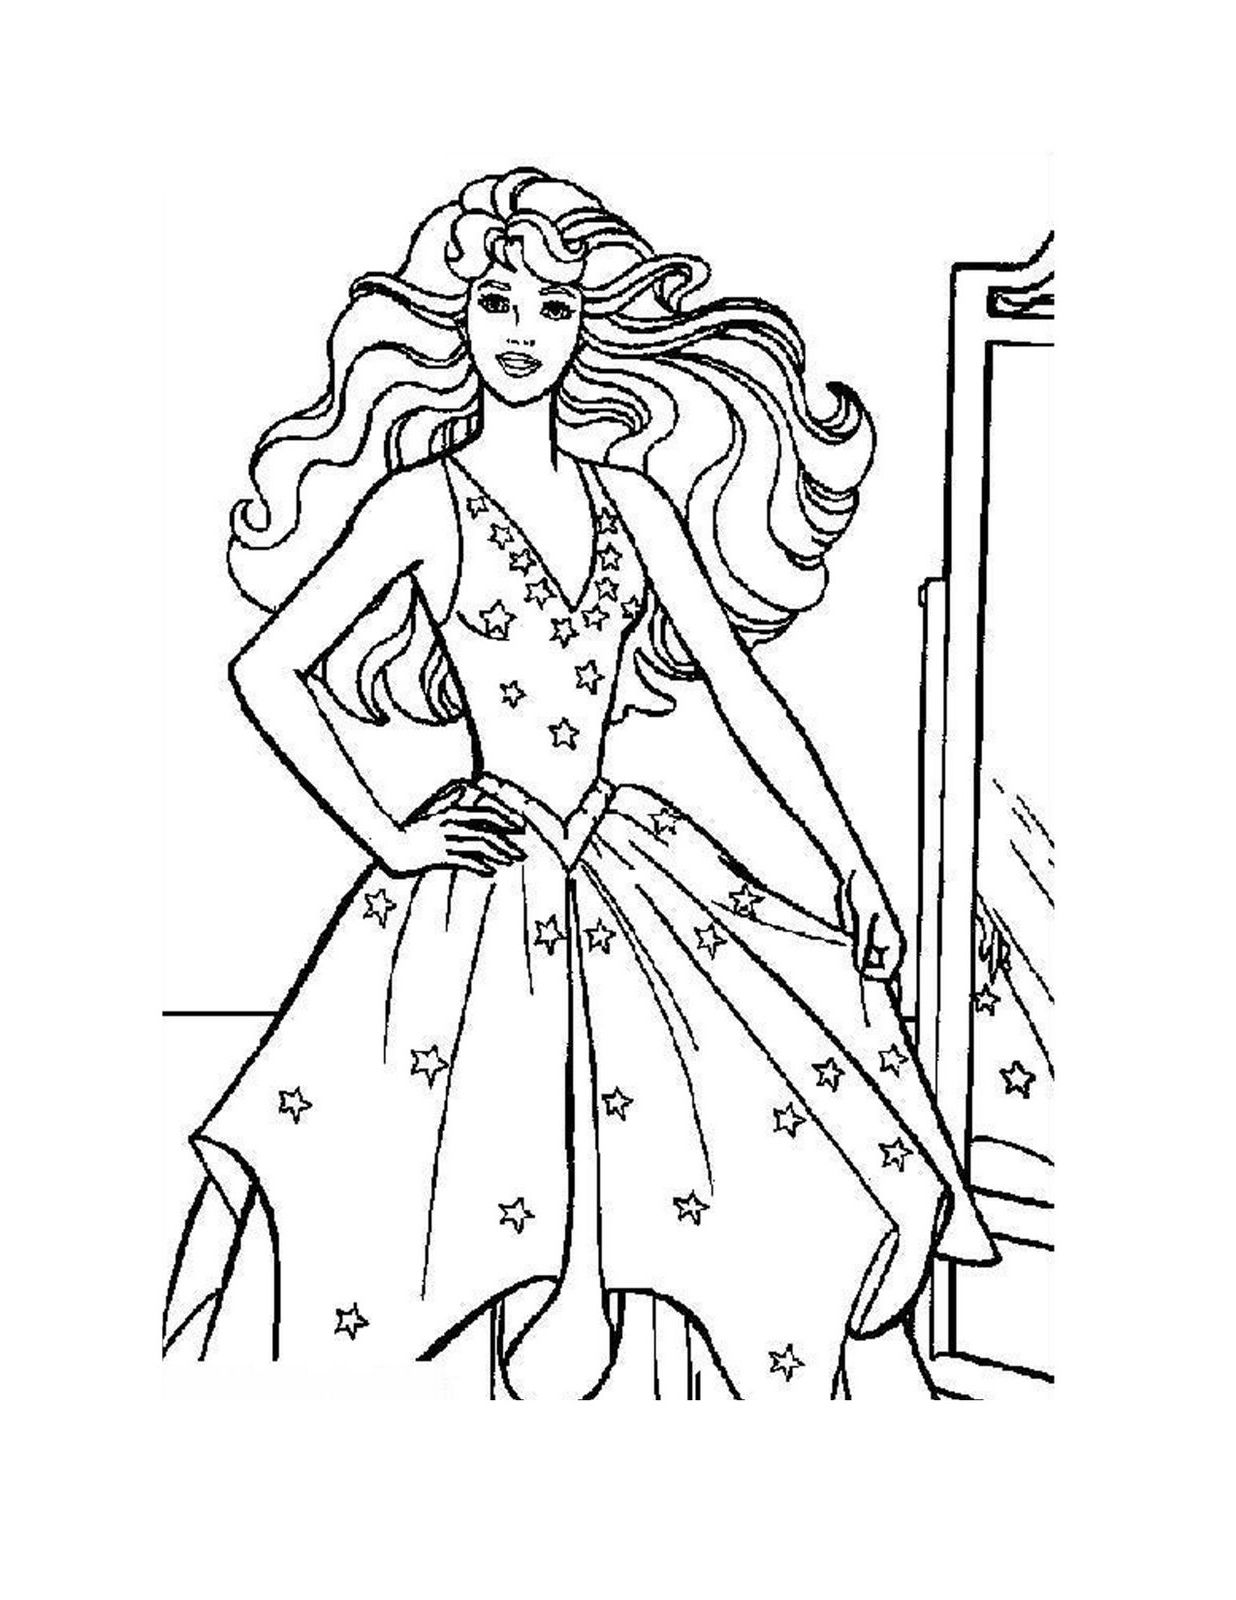 Ausmalbilder Zum Ausdrucken Disney Prinzessin : Princess Barbie Coloring Pages Coloring Pages To Print Coloring